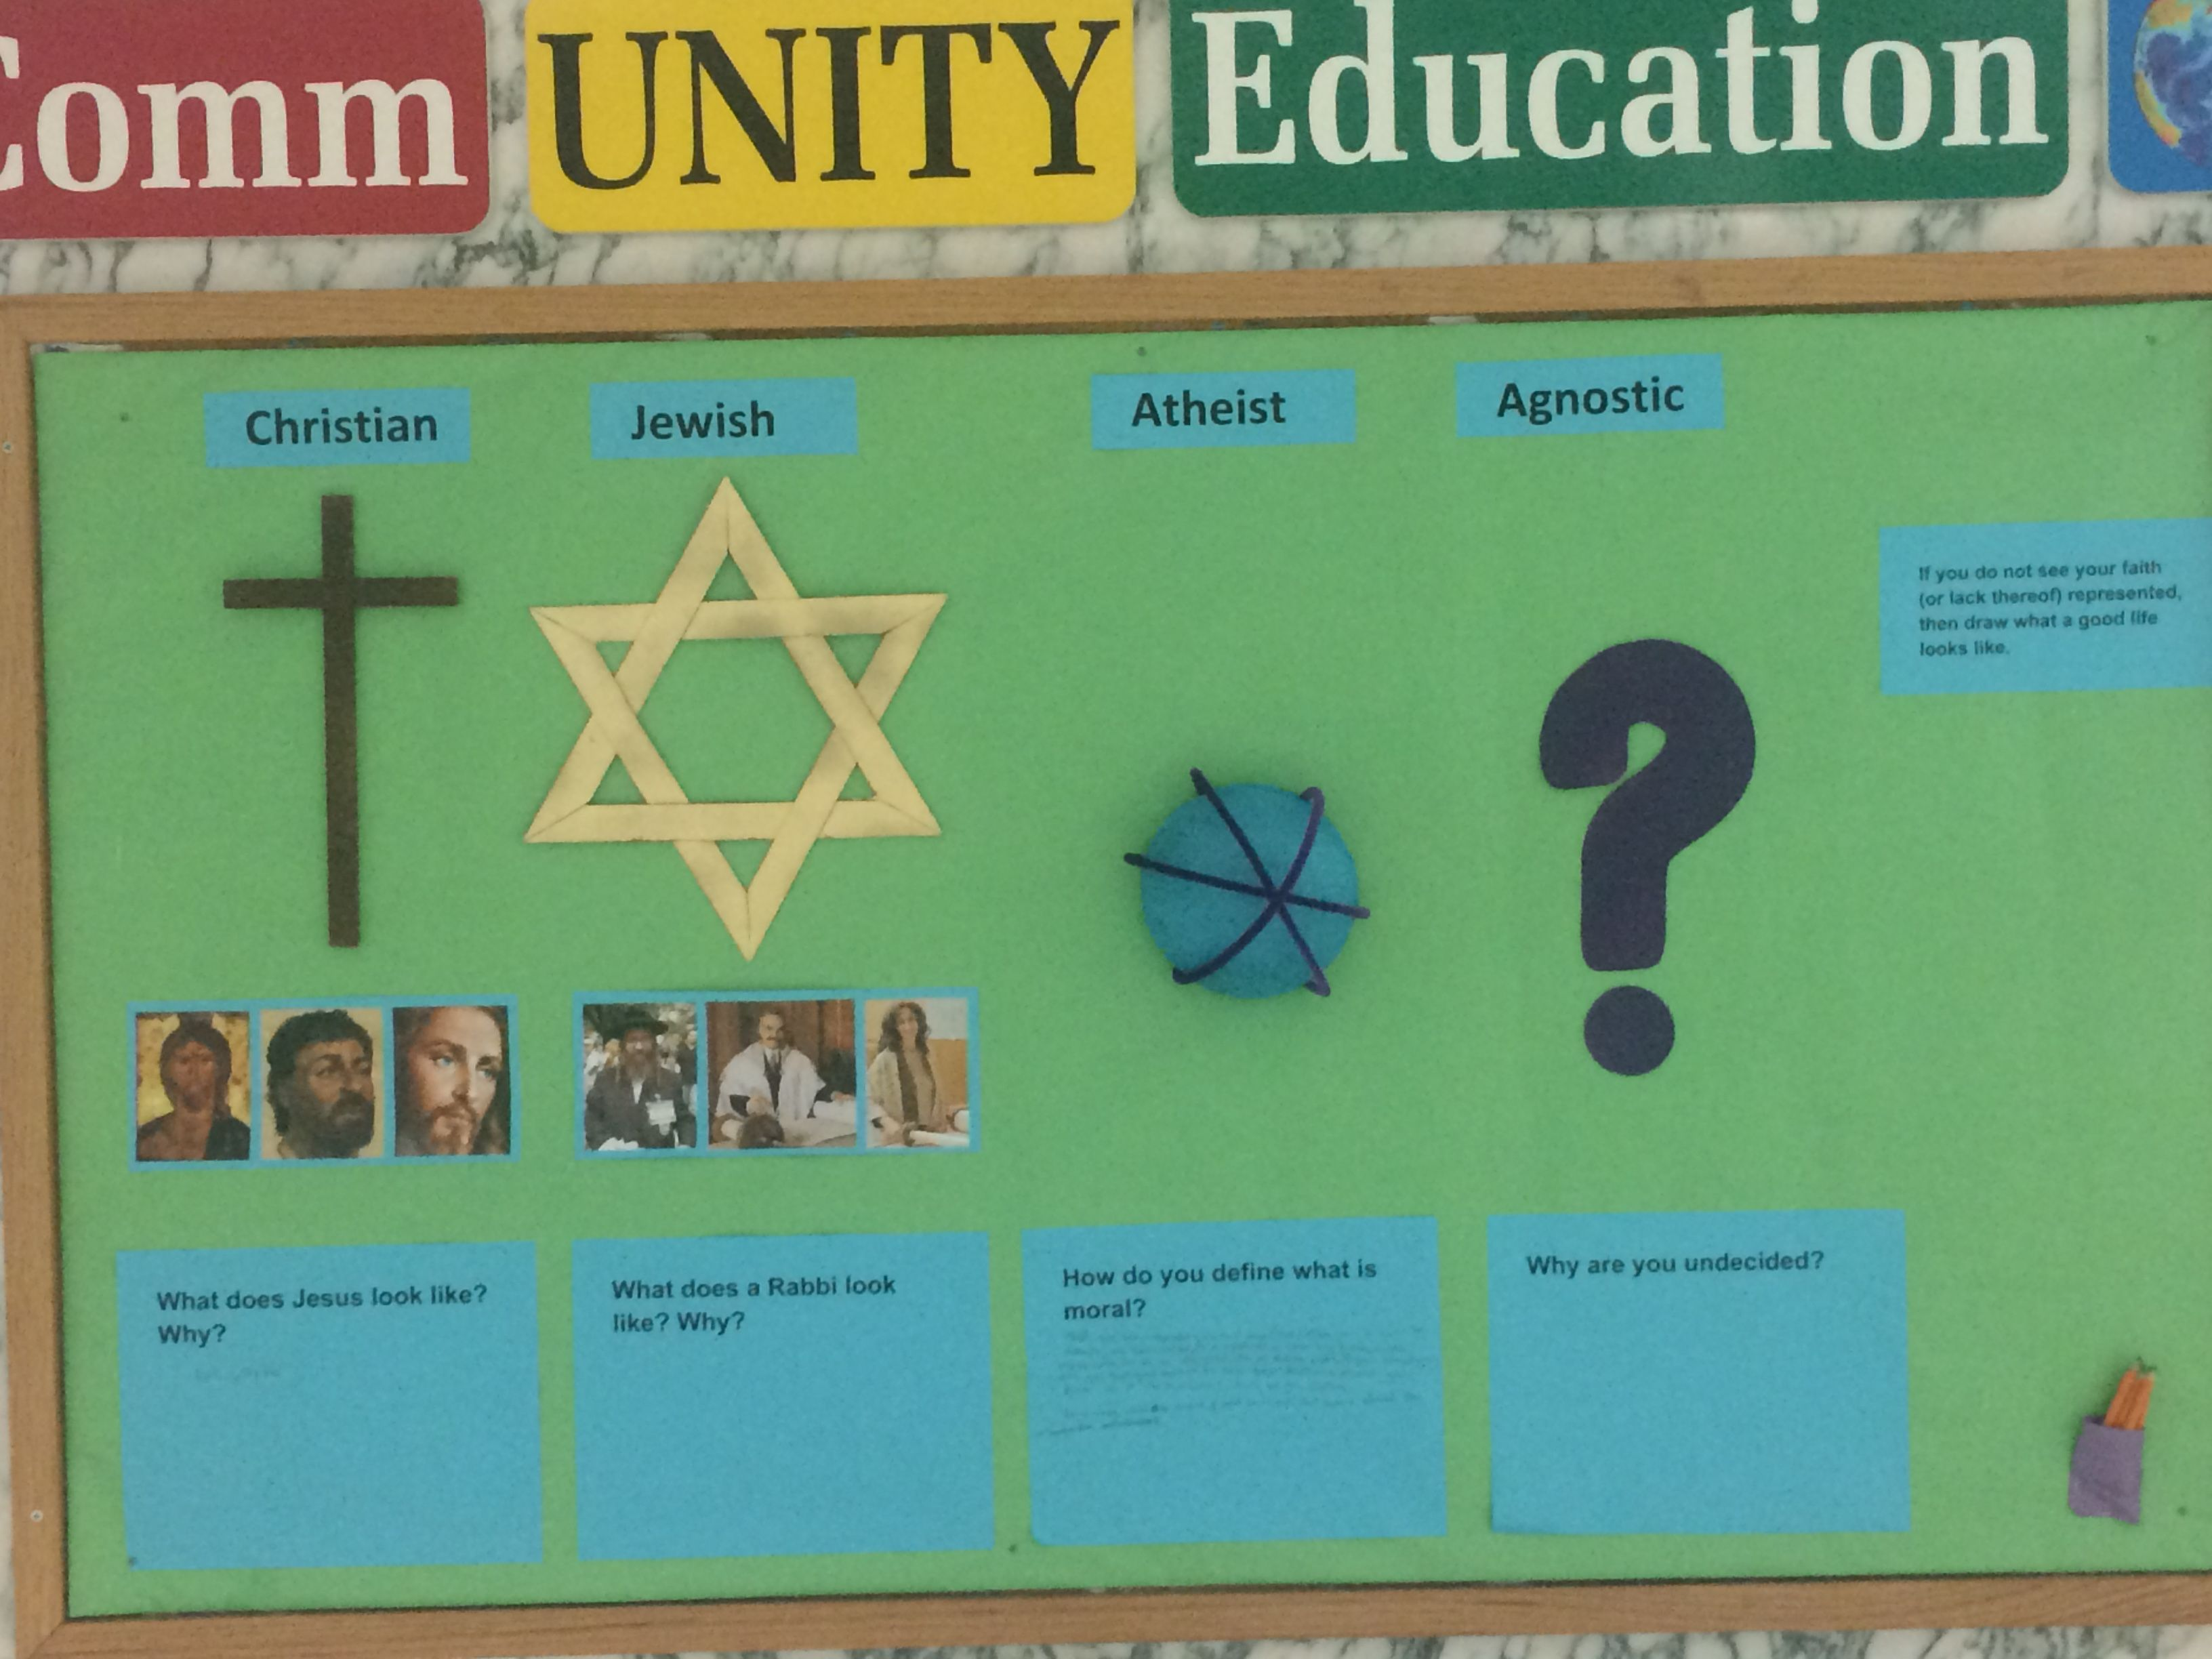 Bulletin Board Examine Different Religion And Famou Leader Made By Cody Vaughn Jewish Christian Atheist Agnostic Paraphrasing Plagiarism Iu